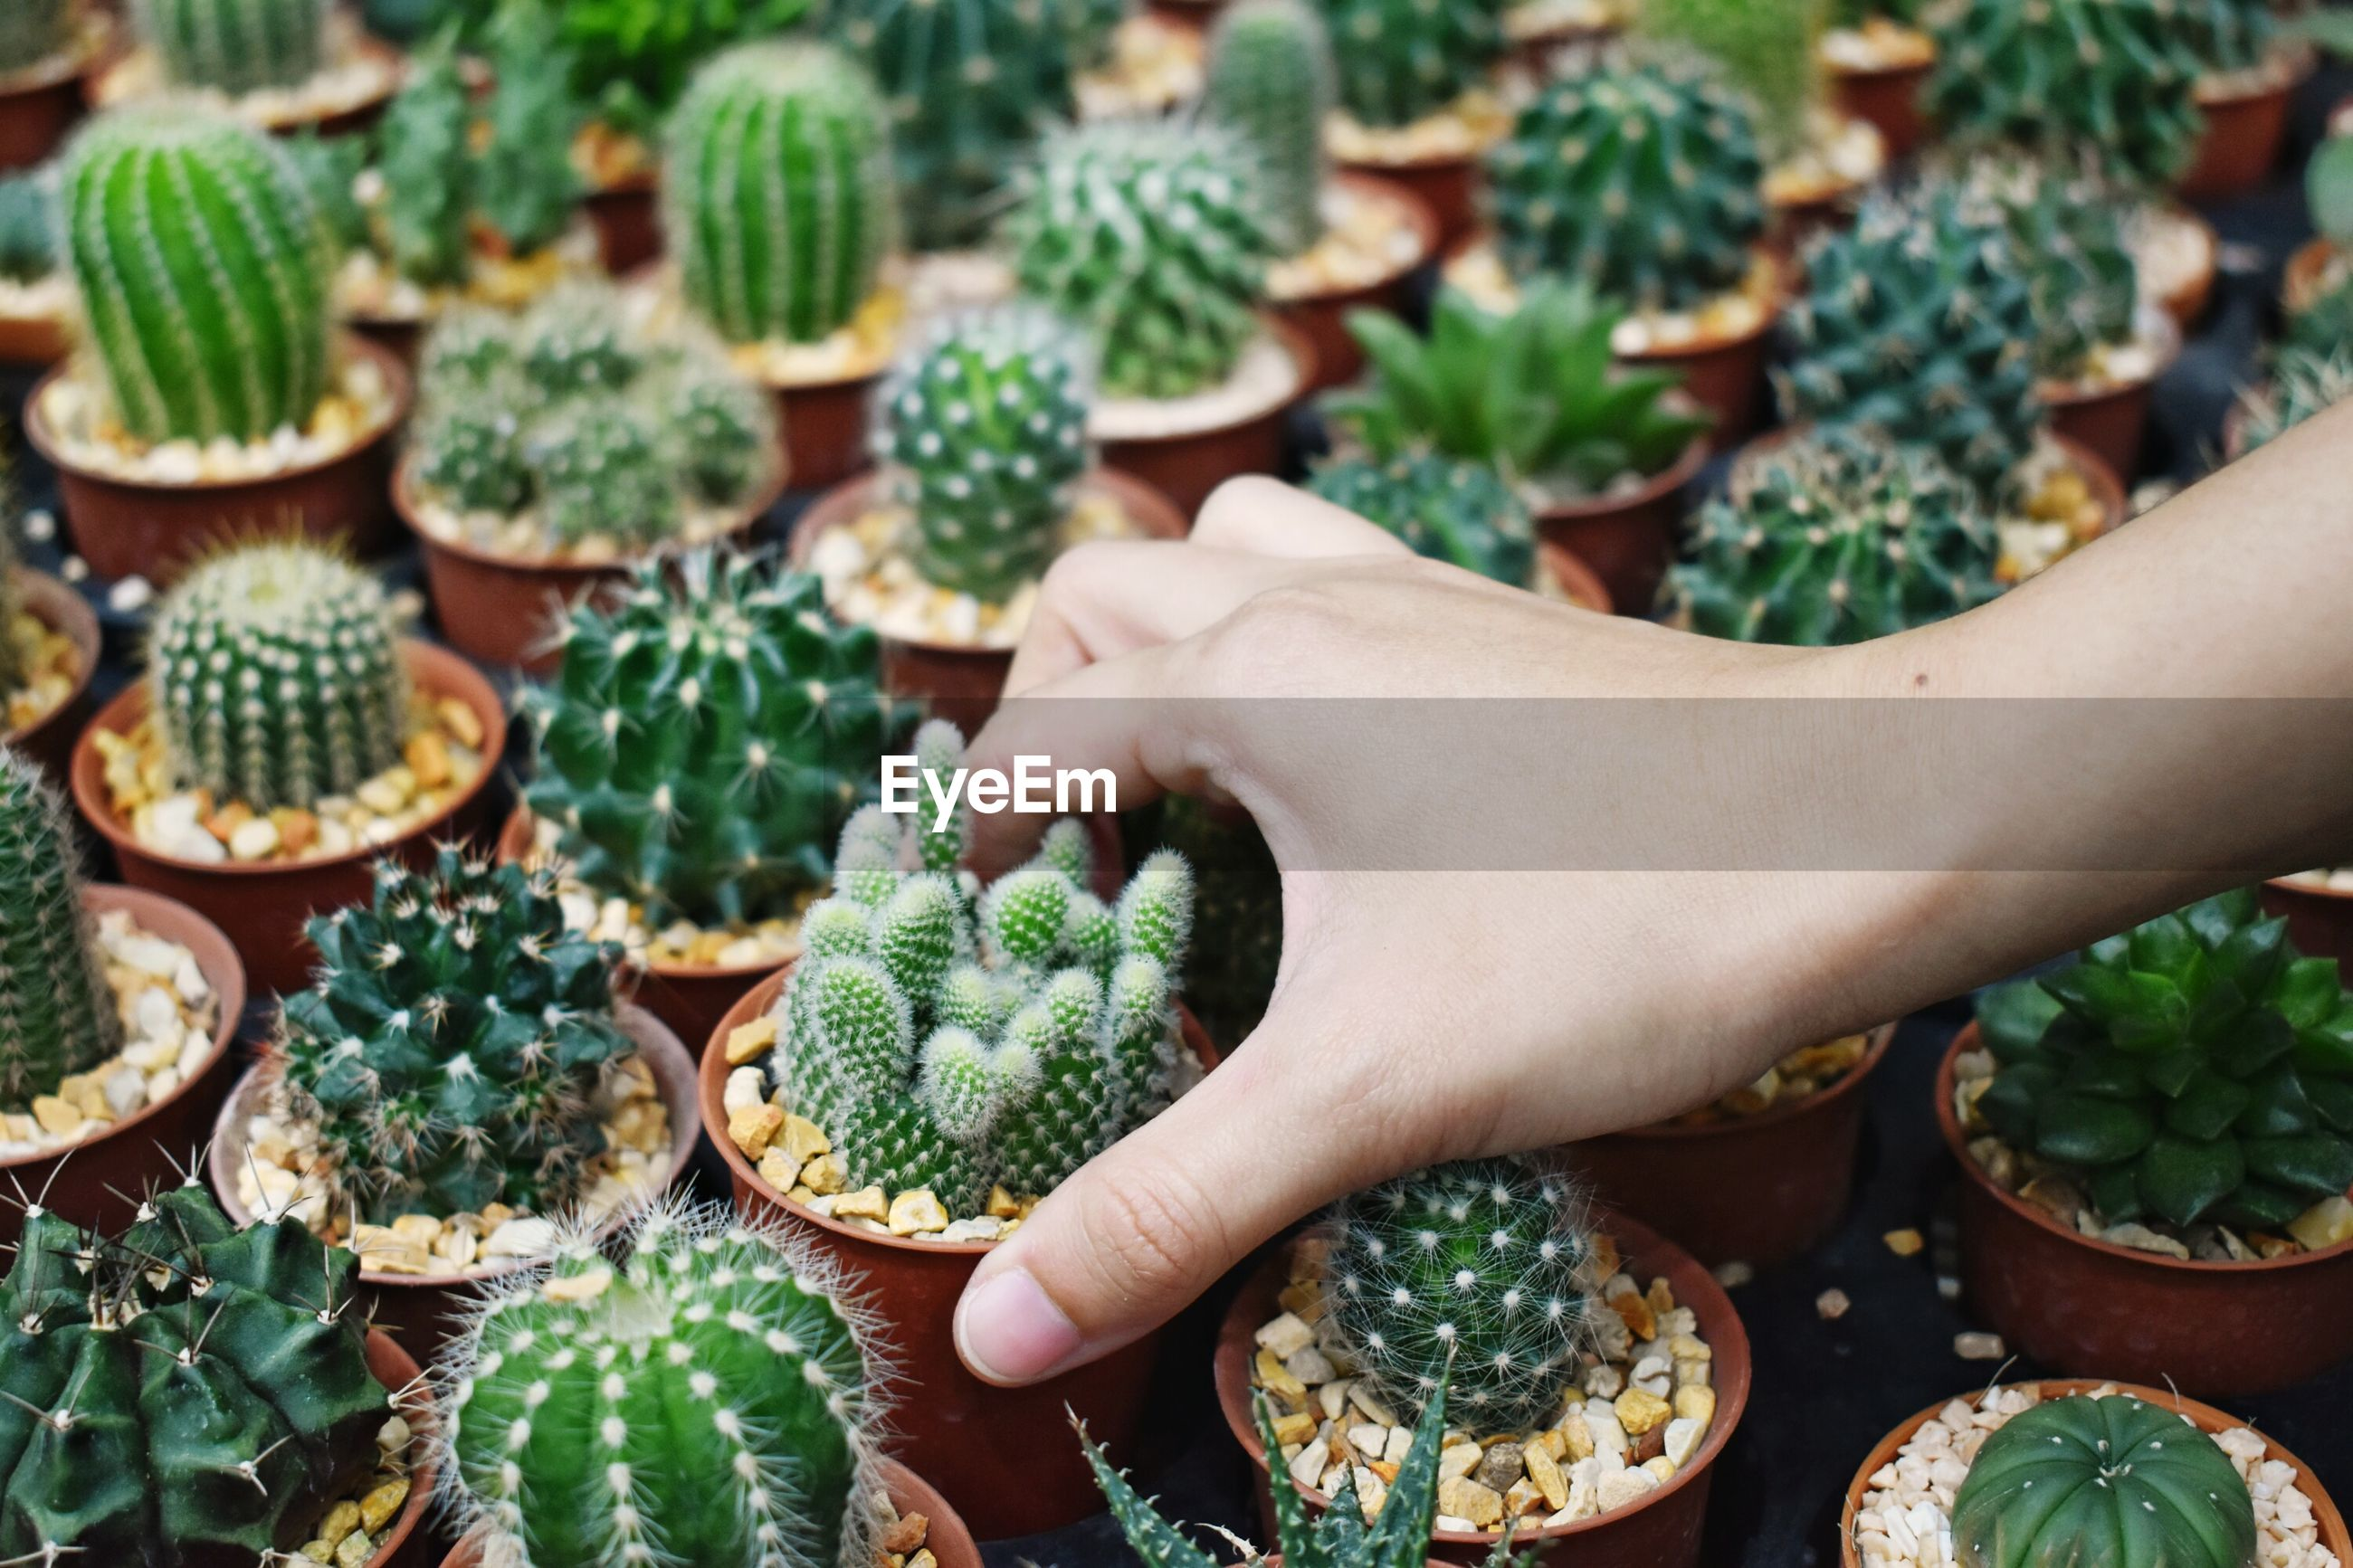 Cropped hand holding potted cactus